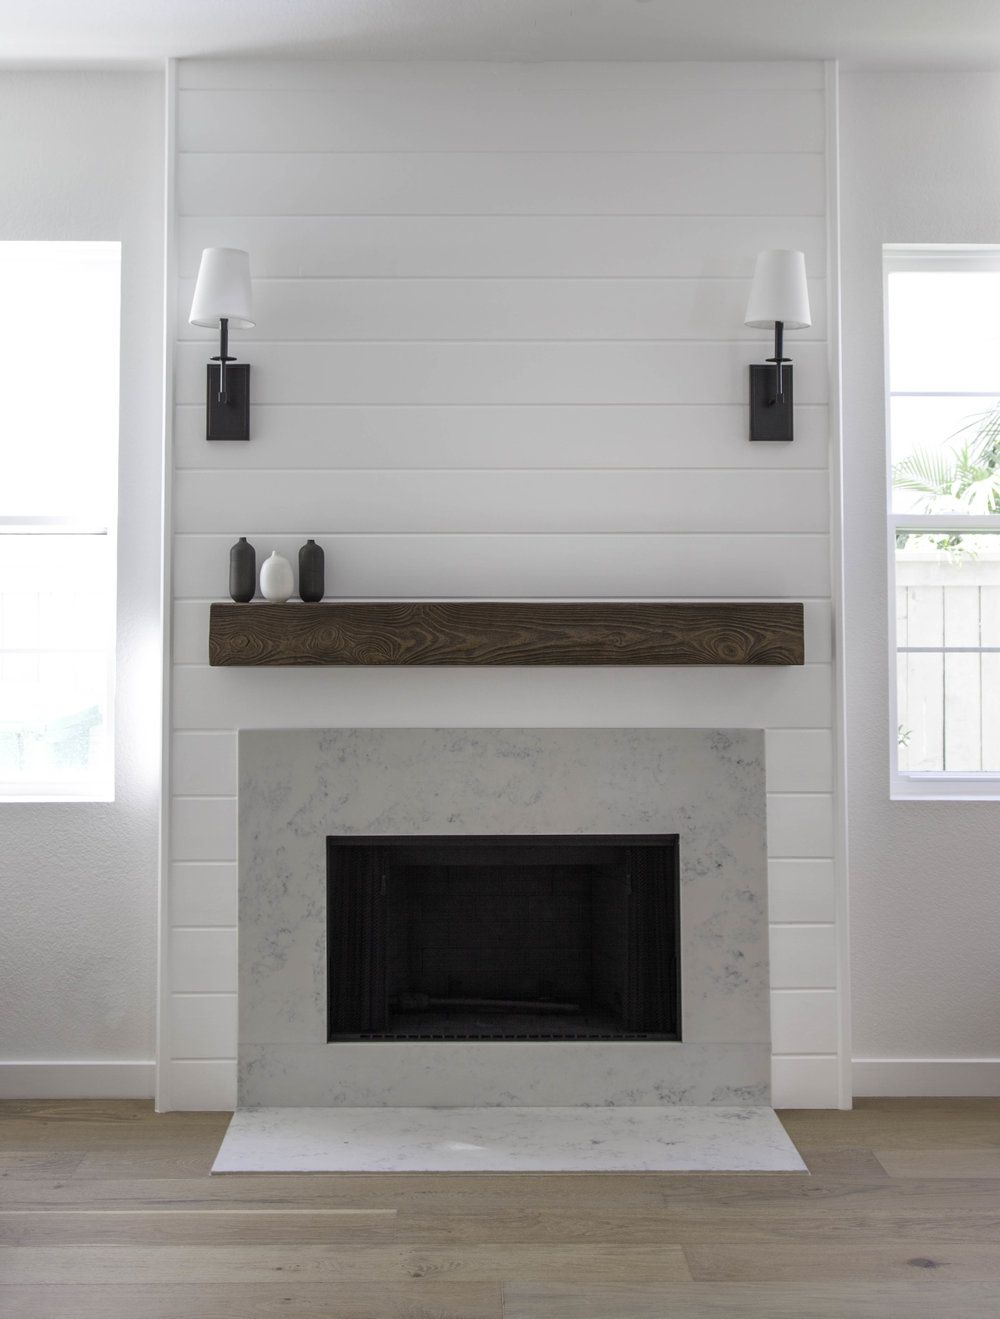 Fireplace Wall Flush Wall With Glass Tile And Metal: Shiplap Fireplace With Quartz By Studio Matsalla